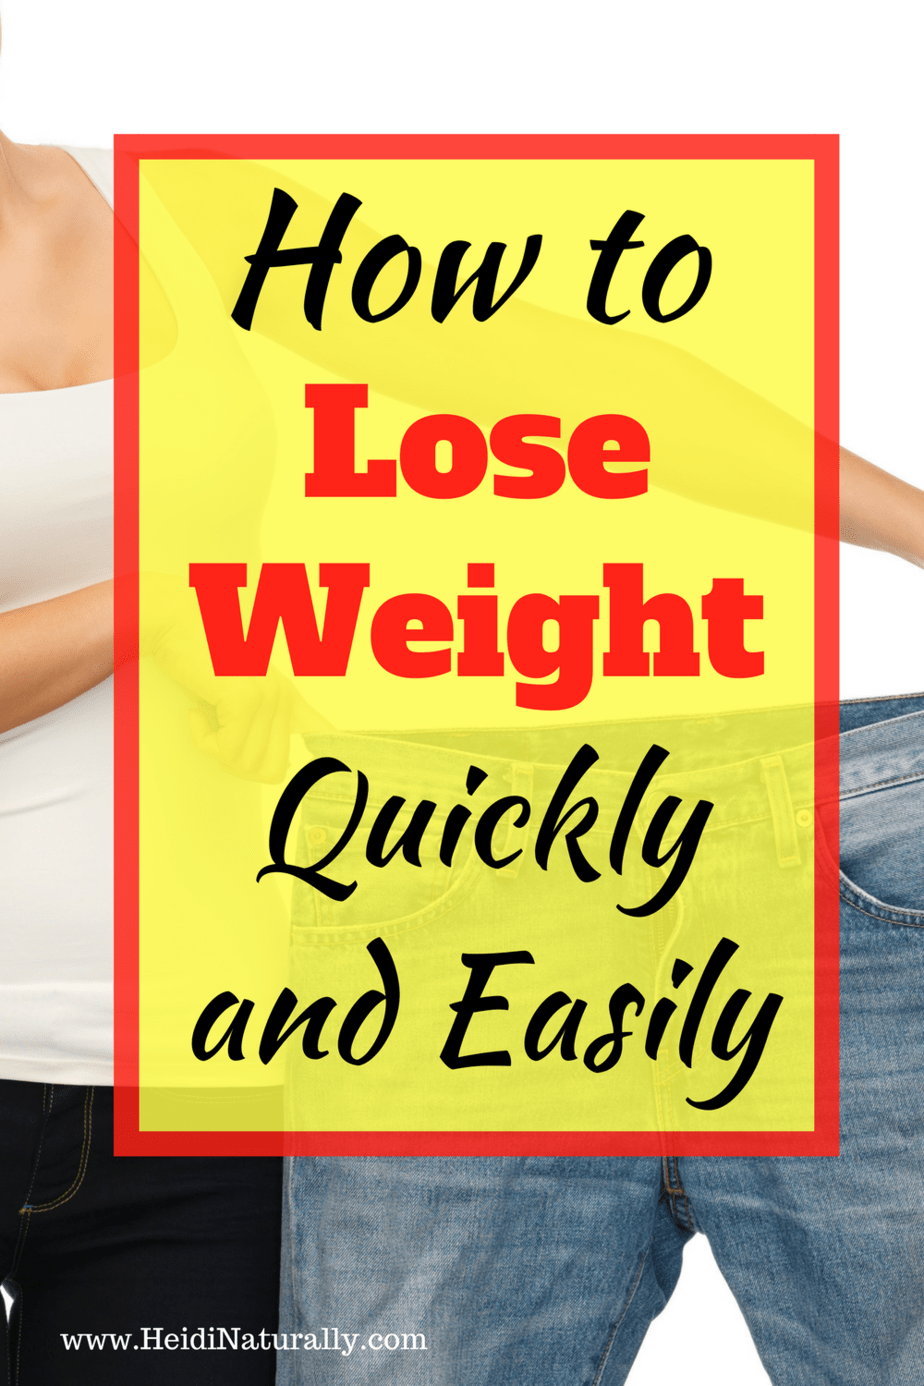 Find out how to lose weight quickly and easily. Quick and simple weight loss IS possible if you follow this recipe. No plan to follow except for 1 drink a day. You'll be amazed at your results. #loseweightquickly #healthyweightloss